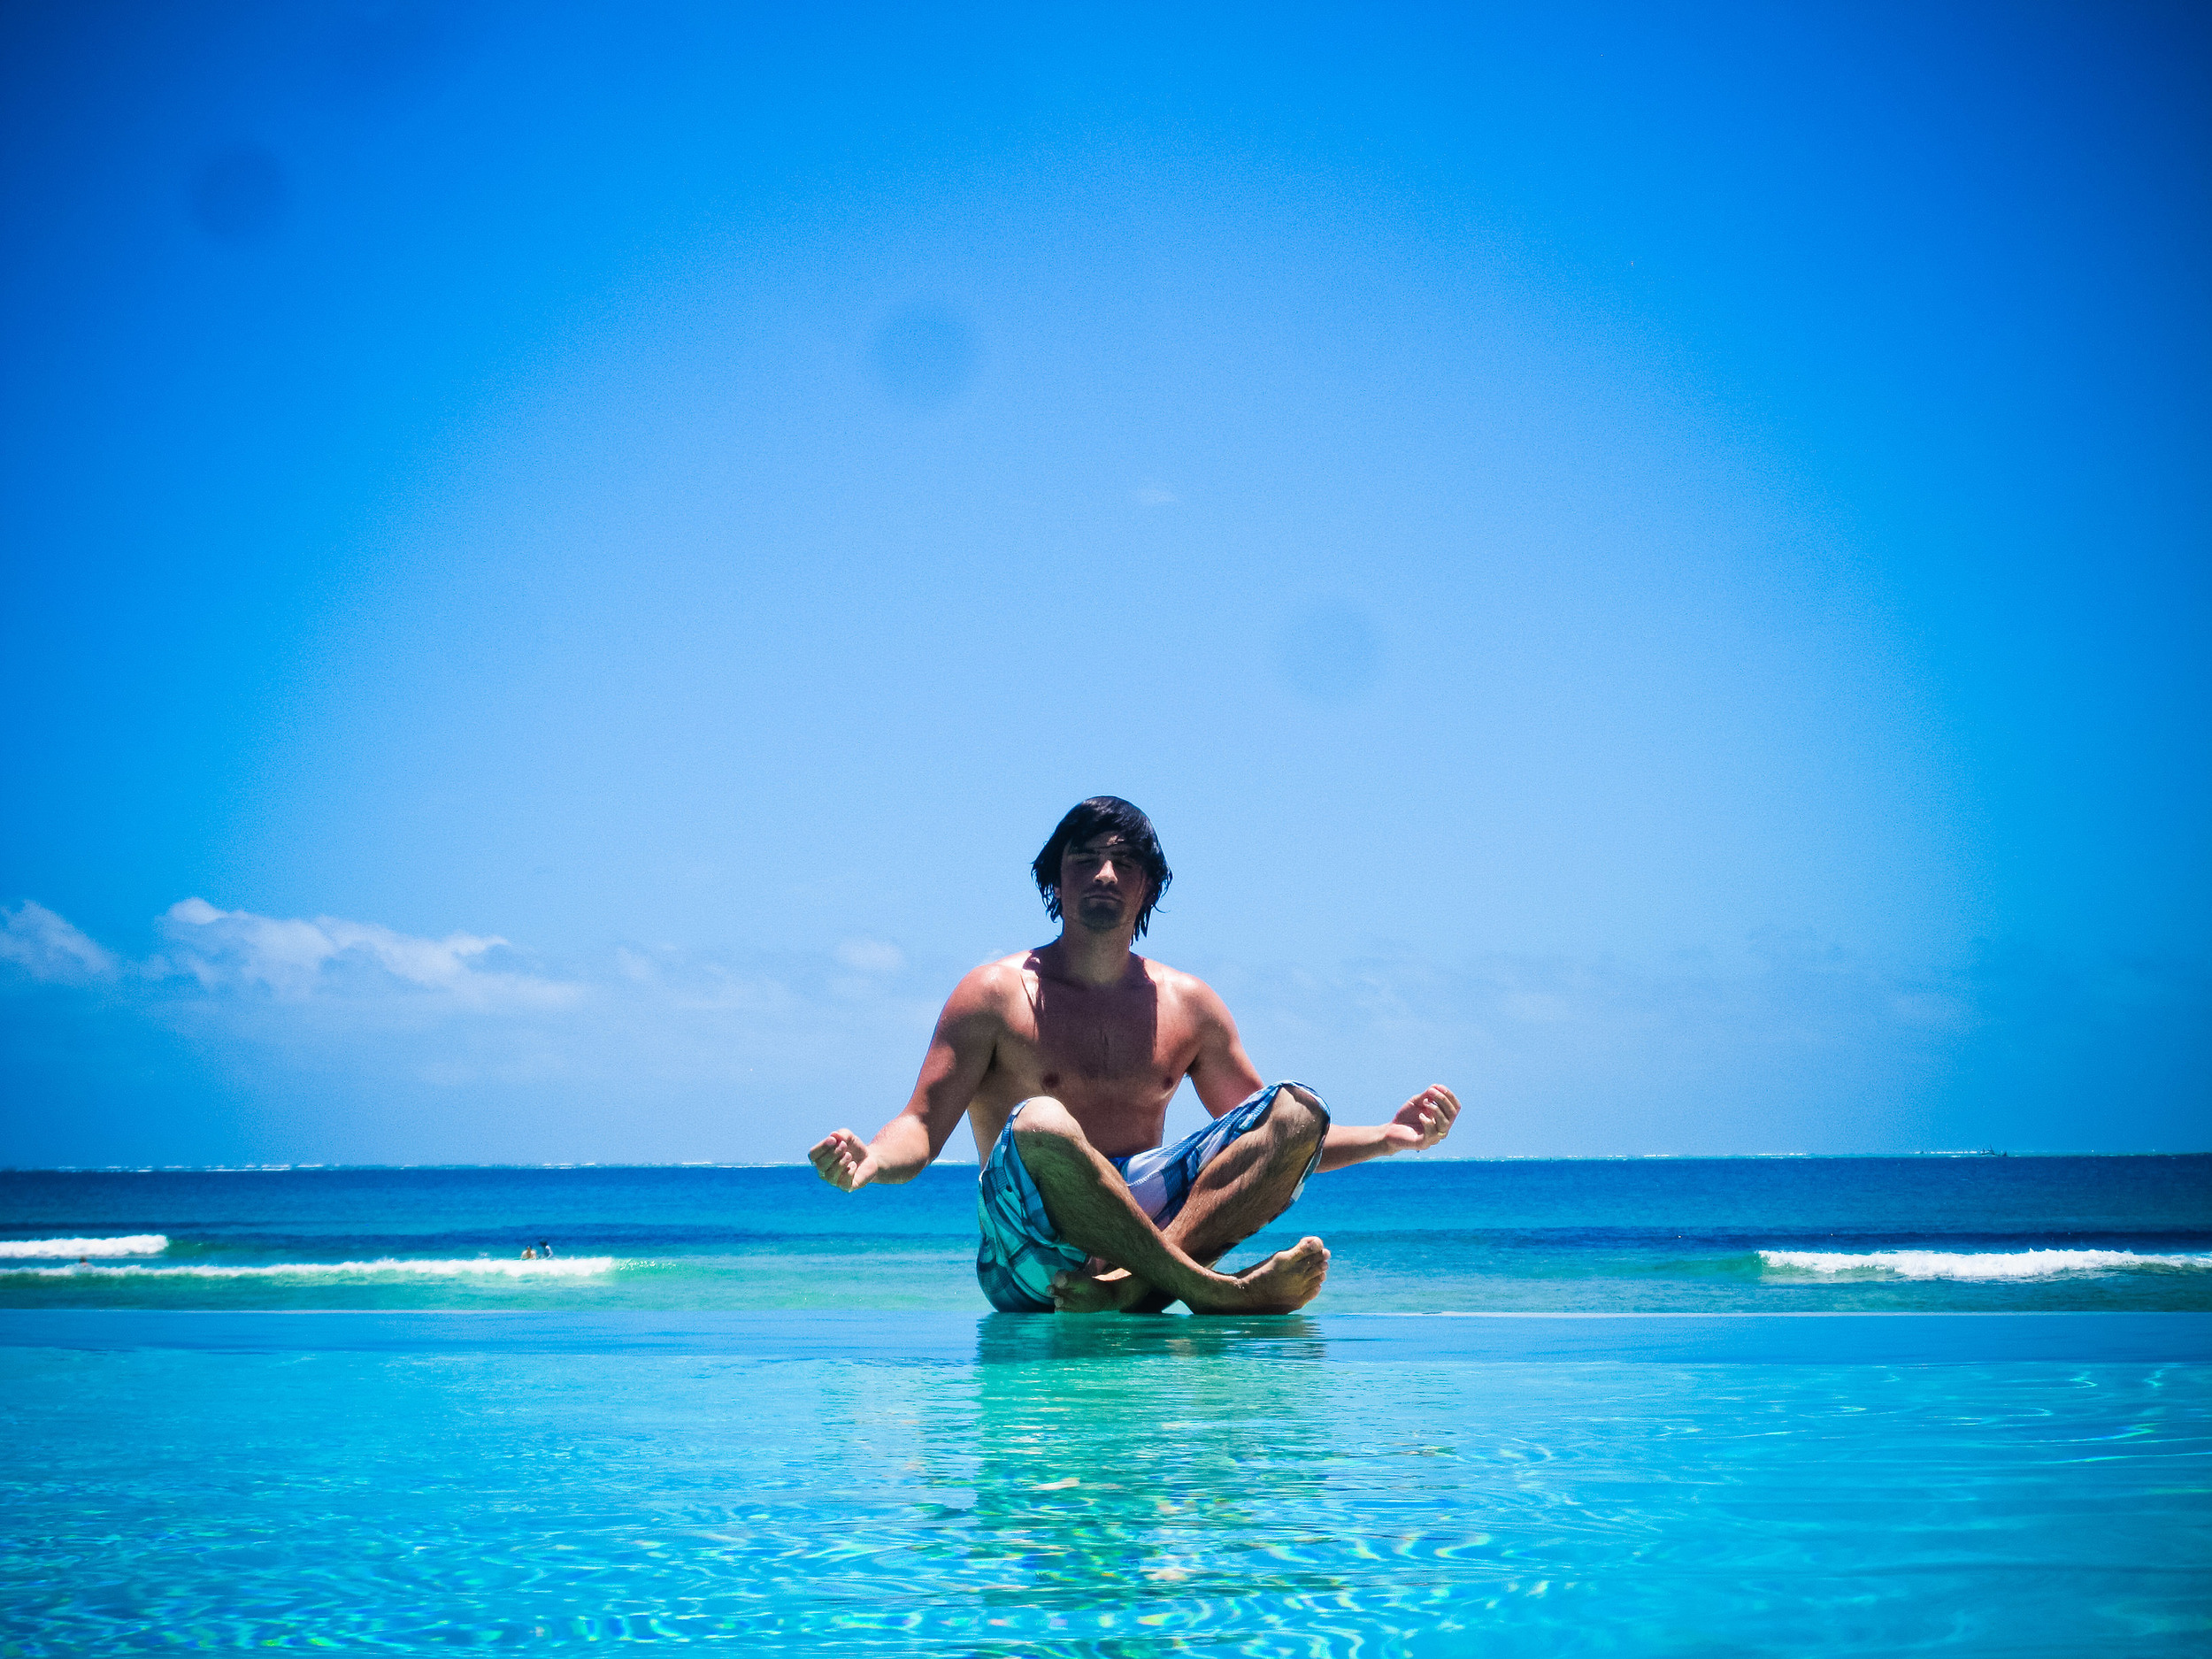 donny in the alue infinity pool